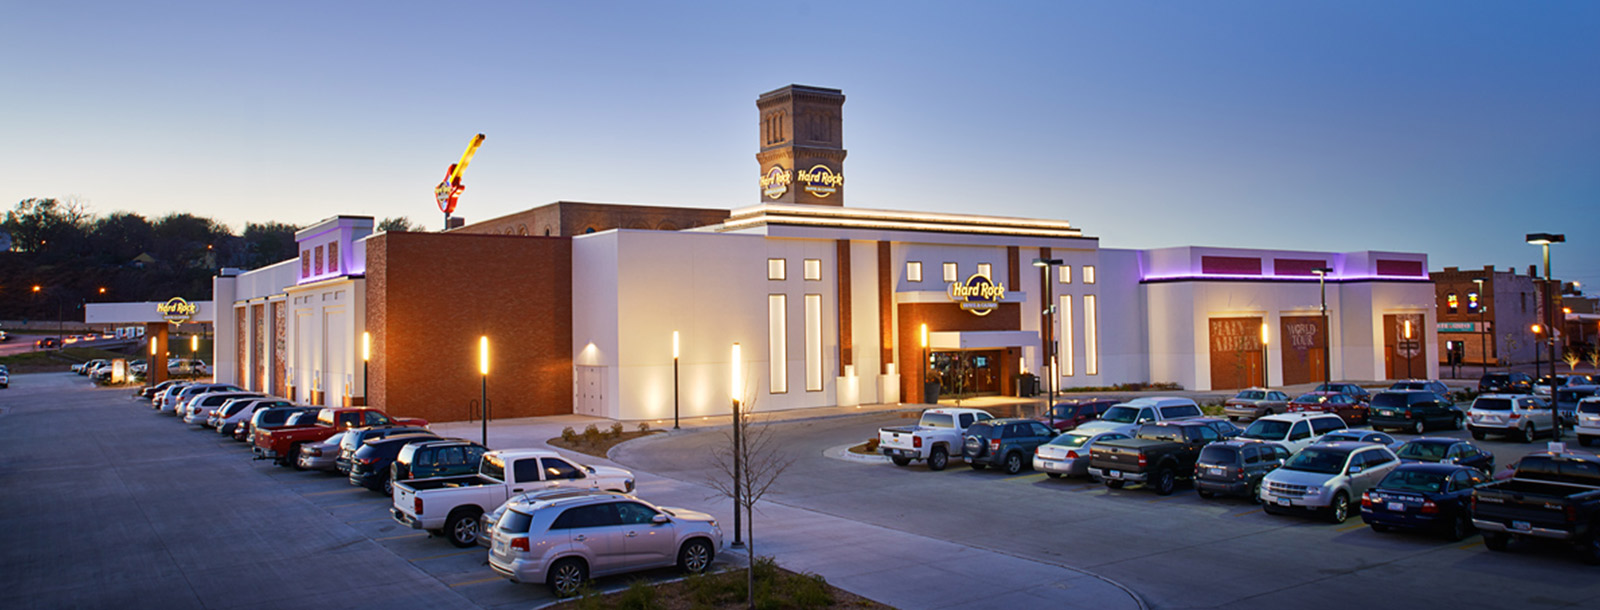 Iowa Casinos Provide Plenty of Gaming Fun for Visitors to the Midwest!